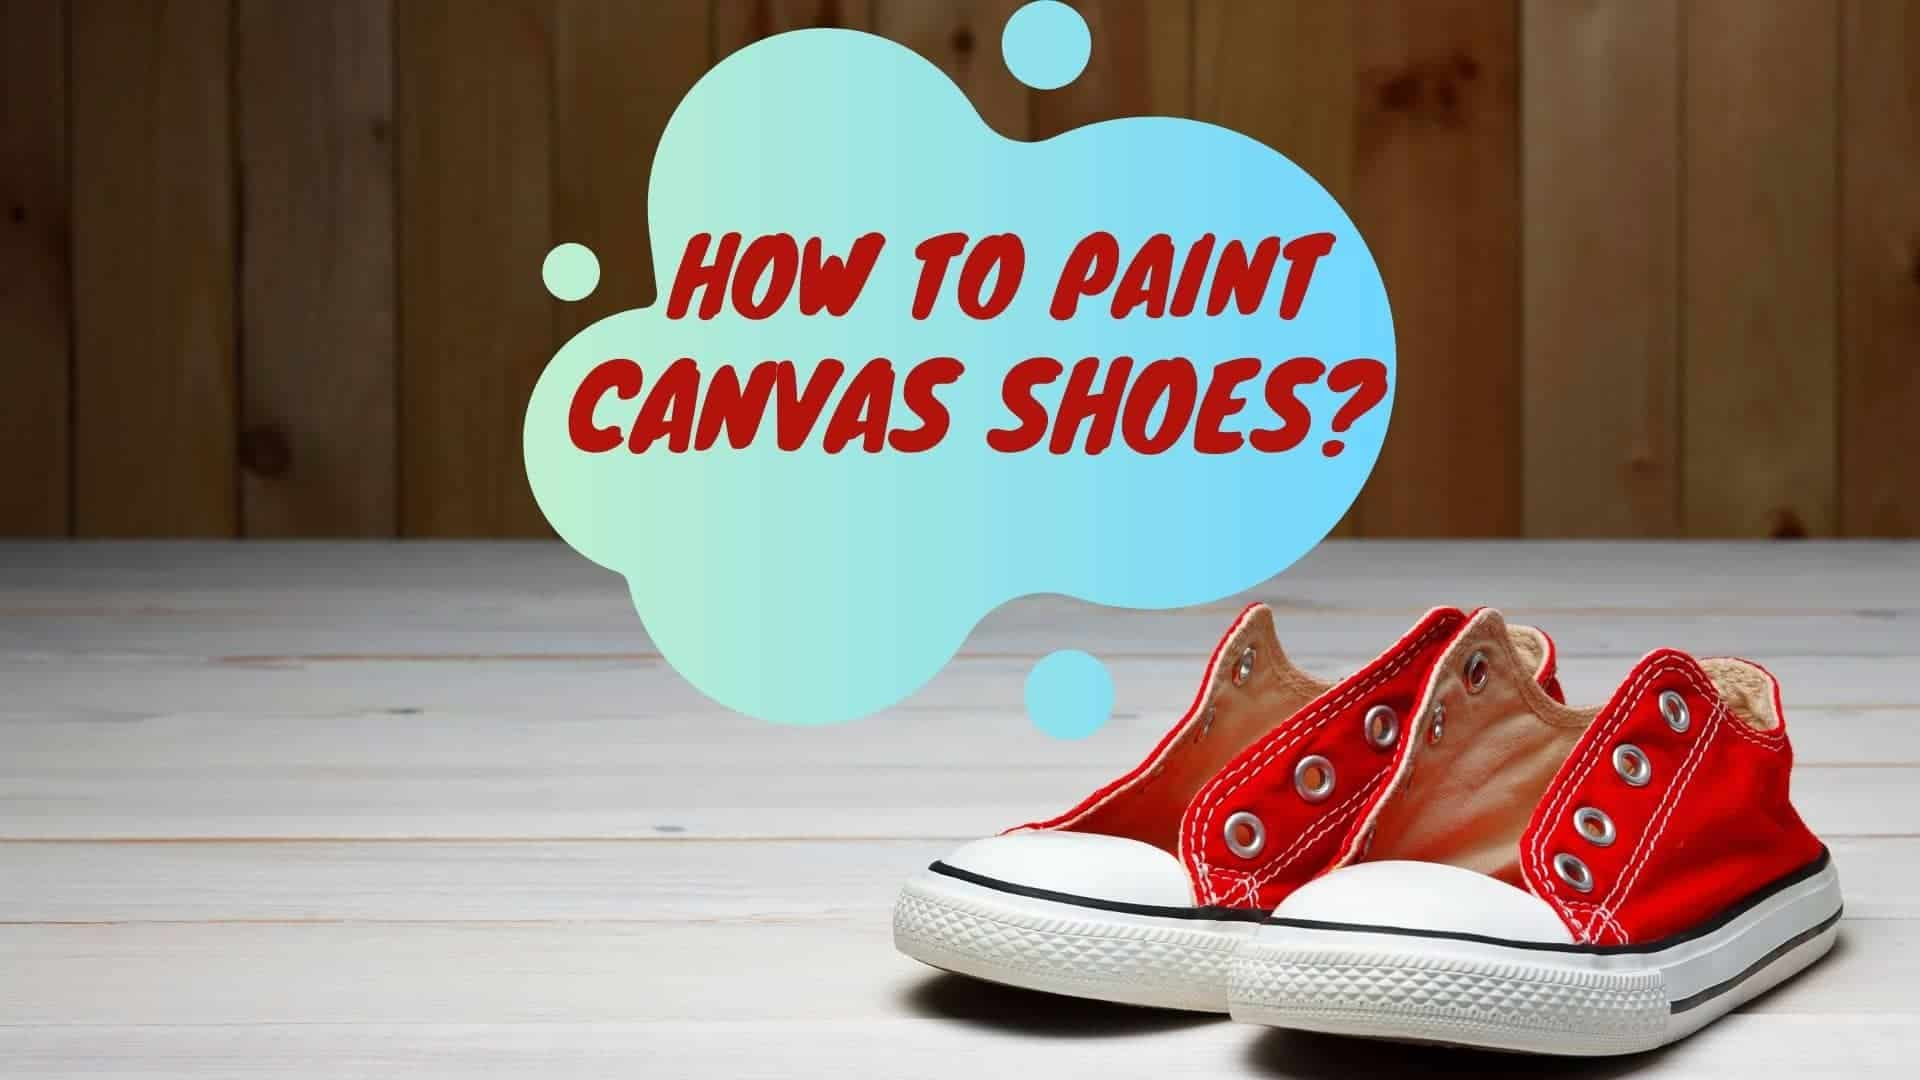 How To Paint Canvas Shoes